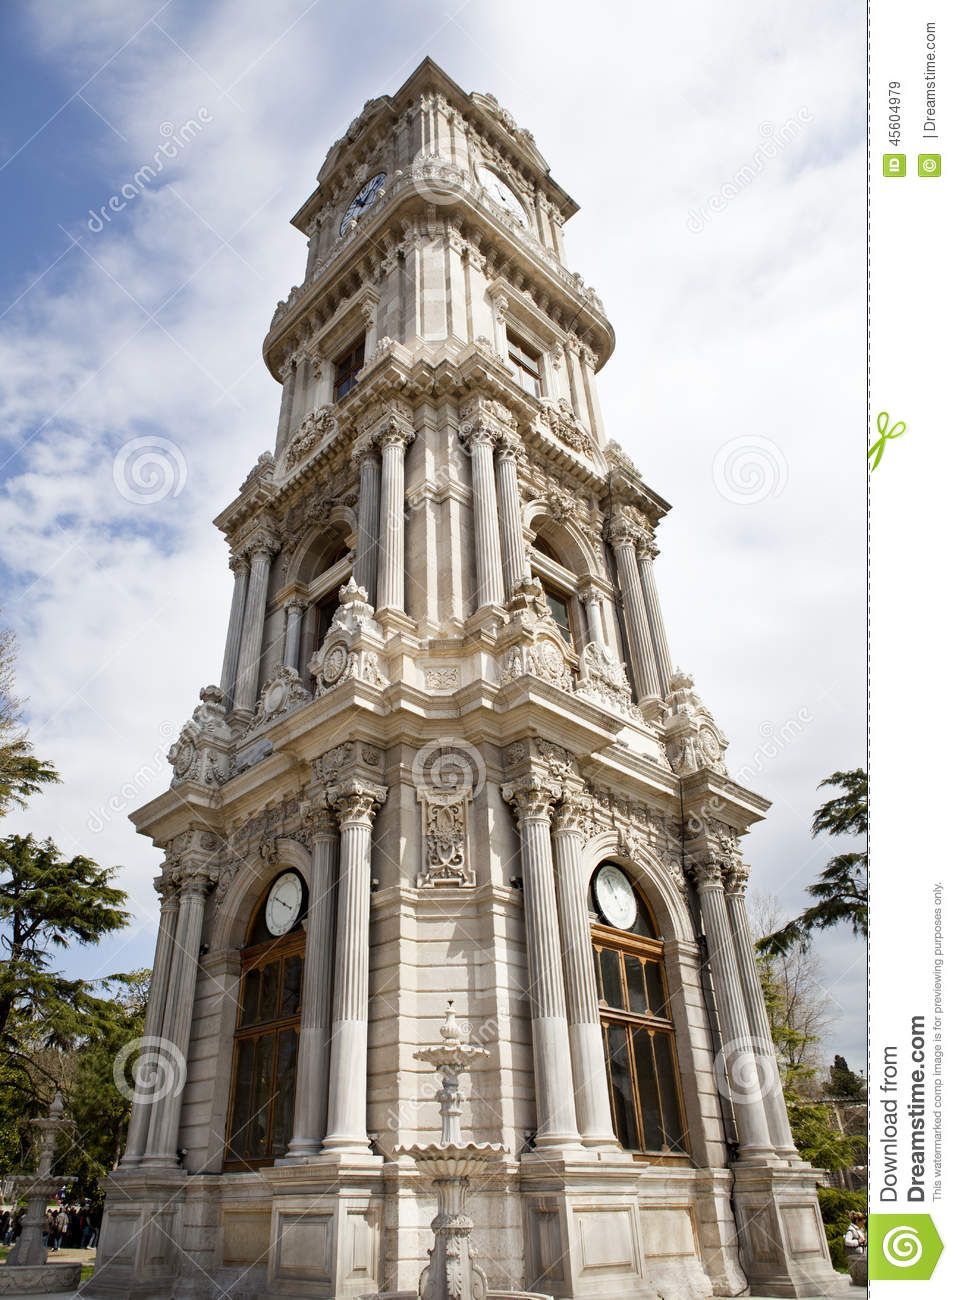 Dolmabahce Clock Tower In Istanbul. Turkey. Stock Photo ...